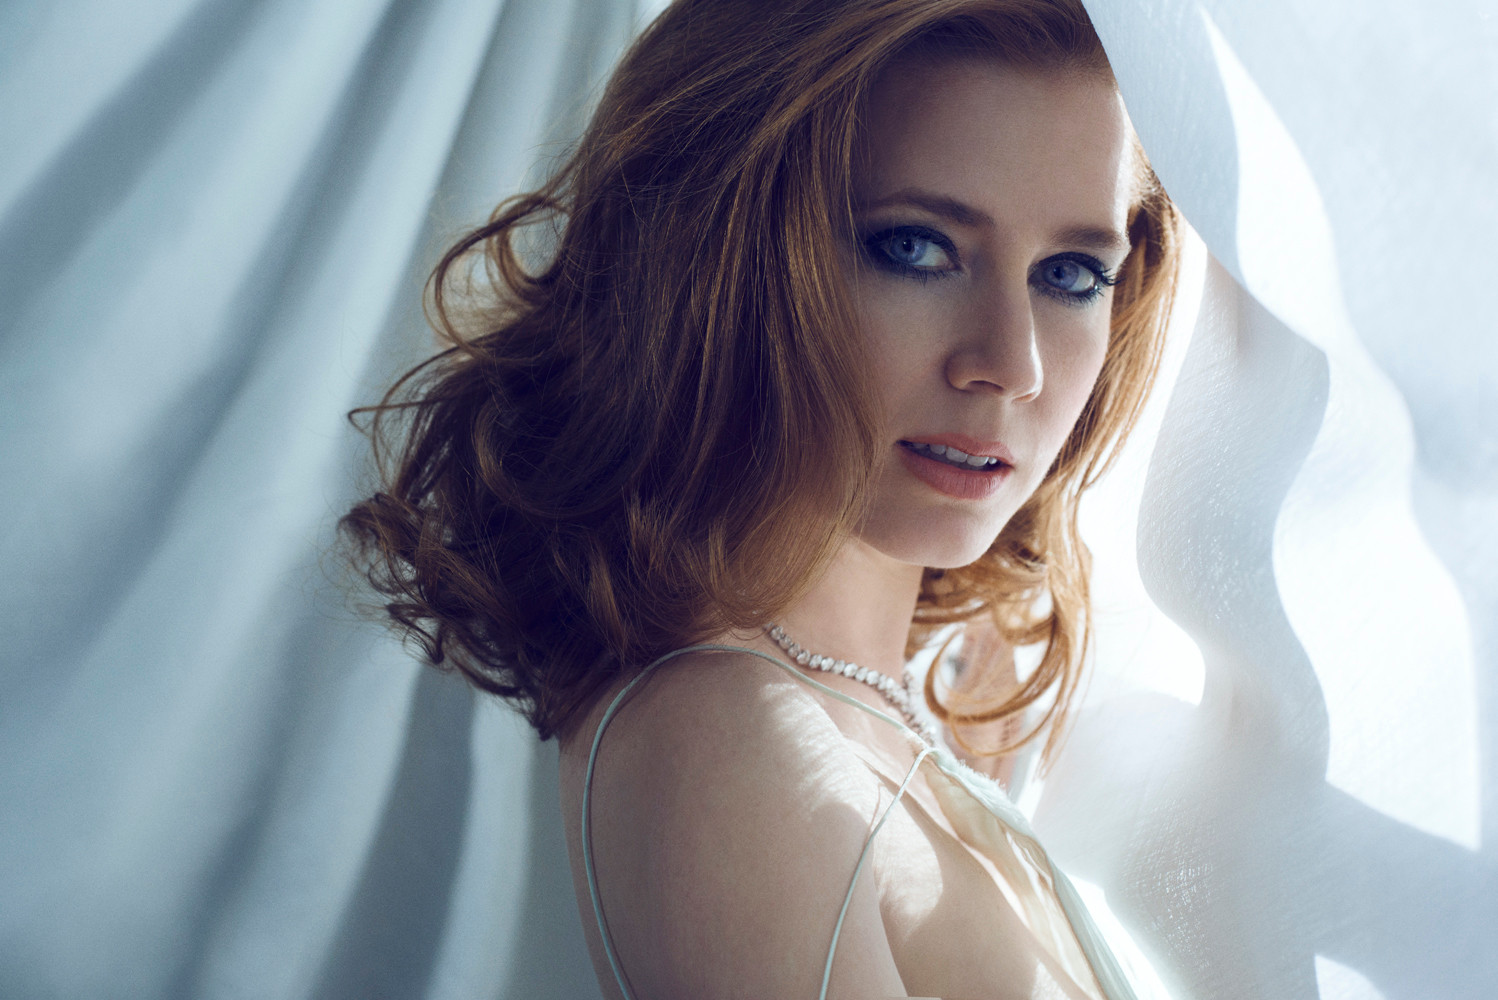 amazing amy adams stunning side look pose still background hd mobile desktop images free